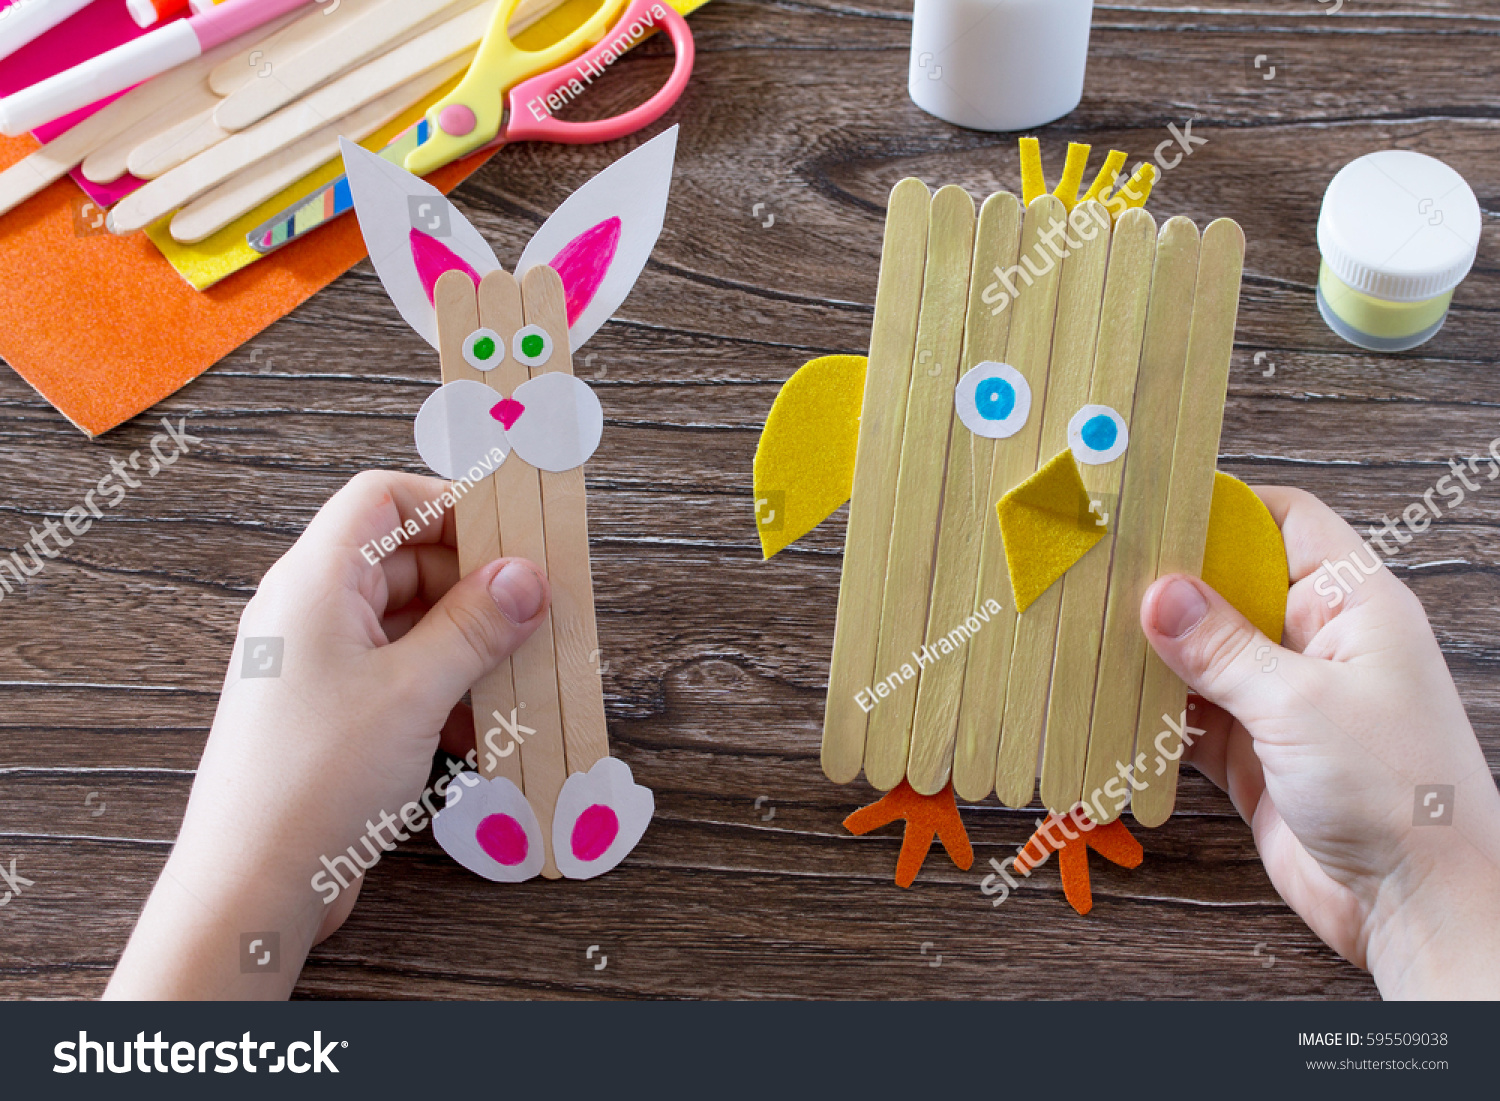 Childrens easter gift wooden chopsticks toy 595509038 childrens easter gift from wooden chopsticks toy chicken and easter bunny hand made negle Images